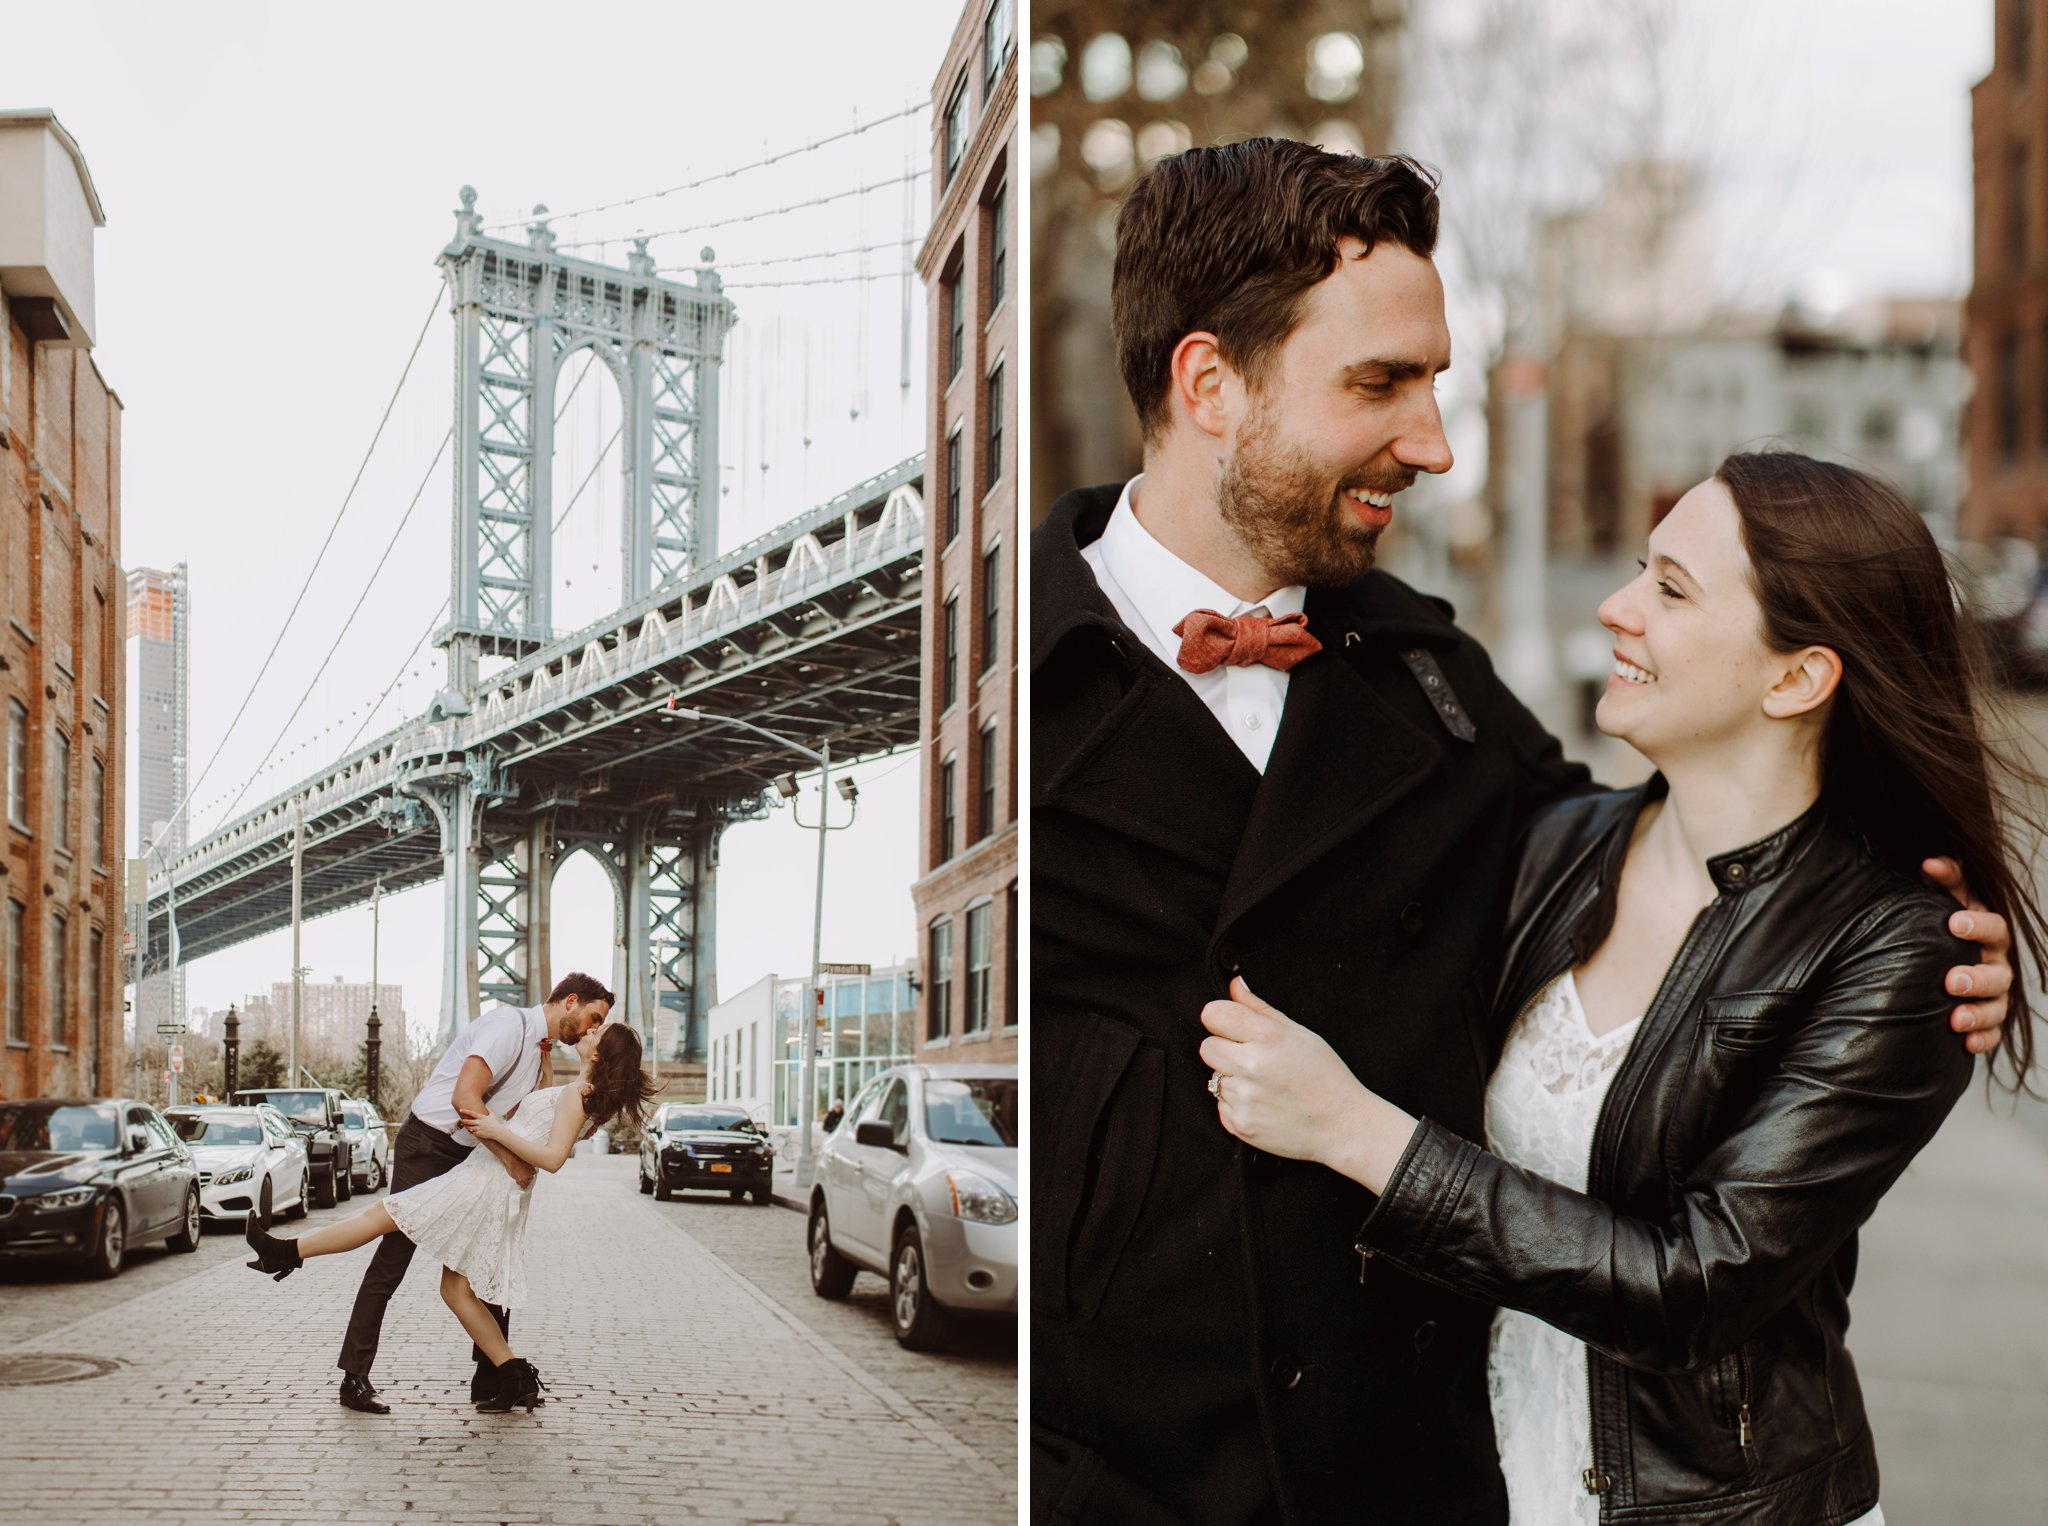 Brooklyn Bridge lifestyle engagement photography Baltimore Maryland wedding photographer